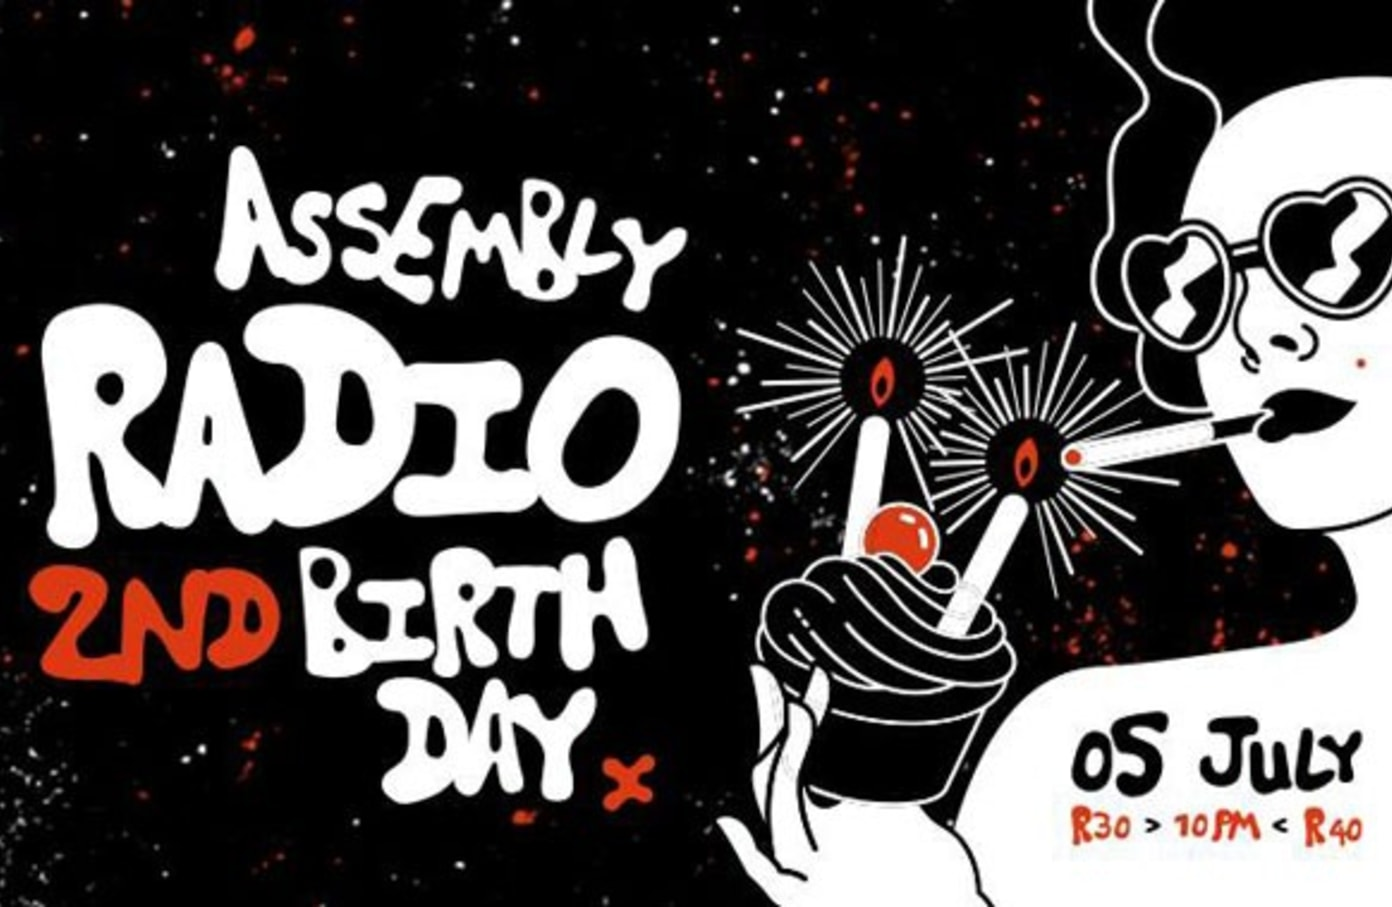 Assembly Radio Celebrates their 2nd Birthday with Niskerone, Christian Tiger School and more!